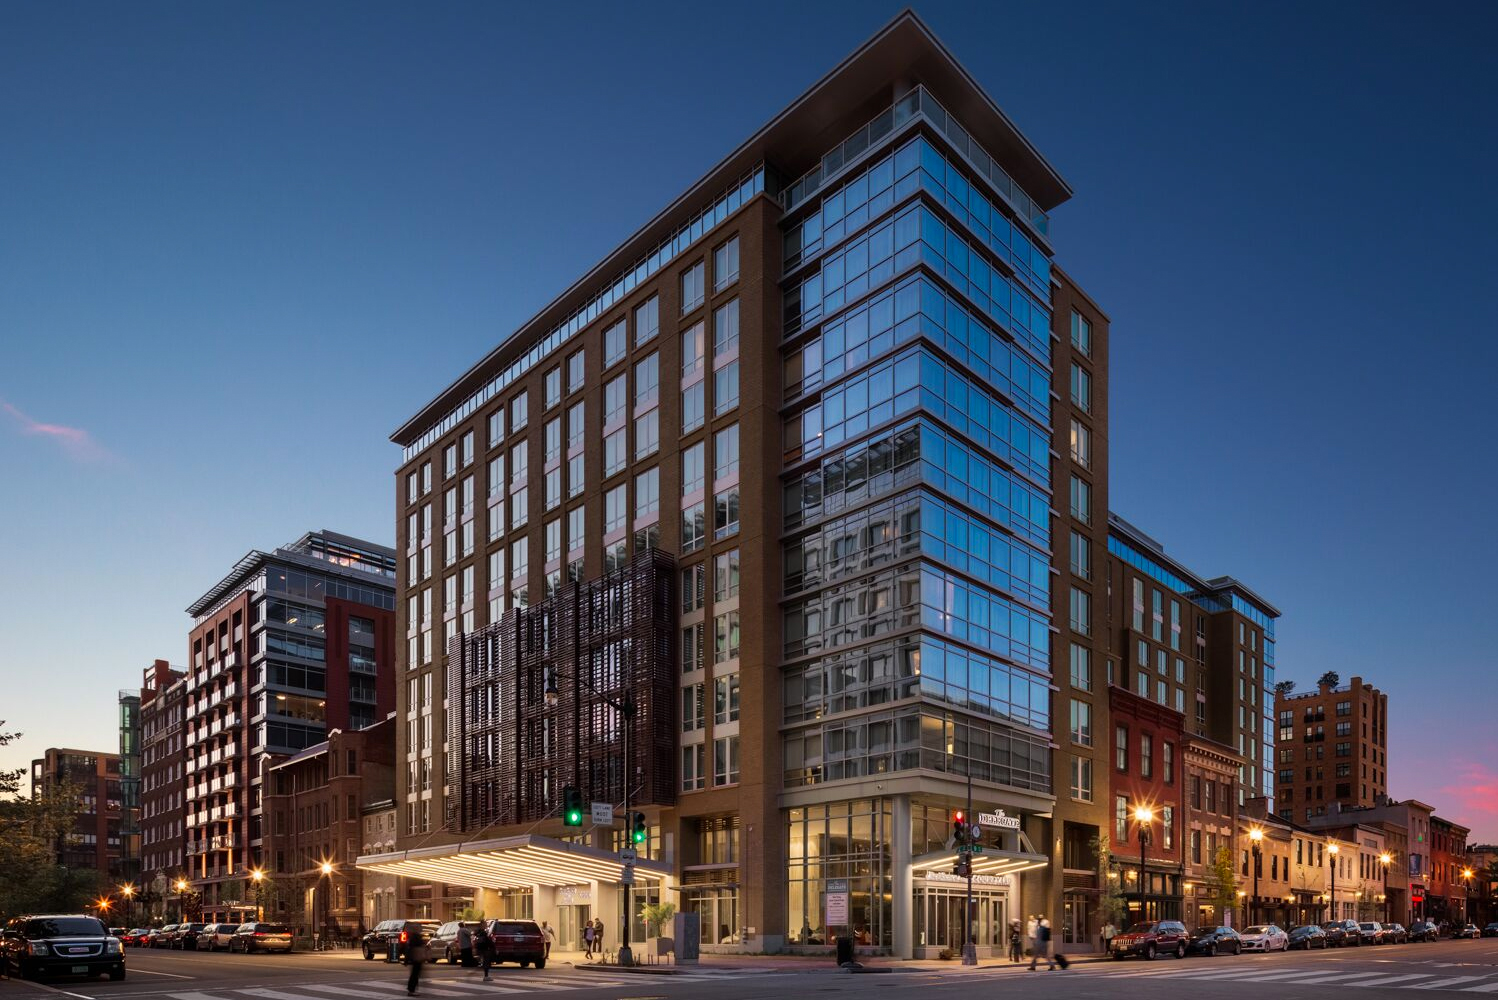 The project is located adjacent to DC's Walter E. Washington Convention Center and Marriott Marquis Convention Hotel.